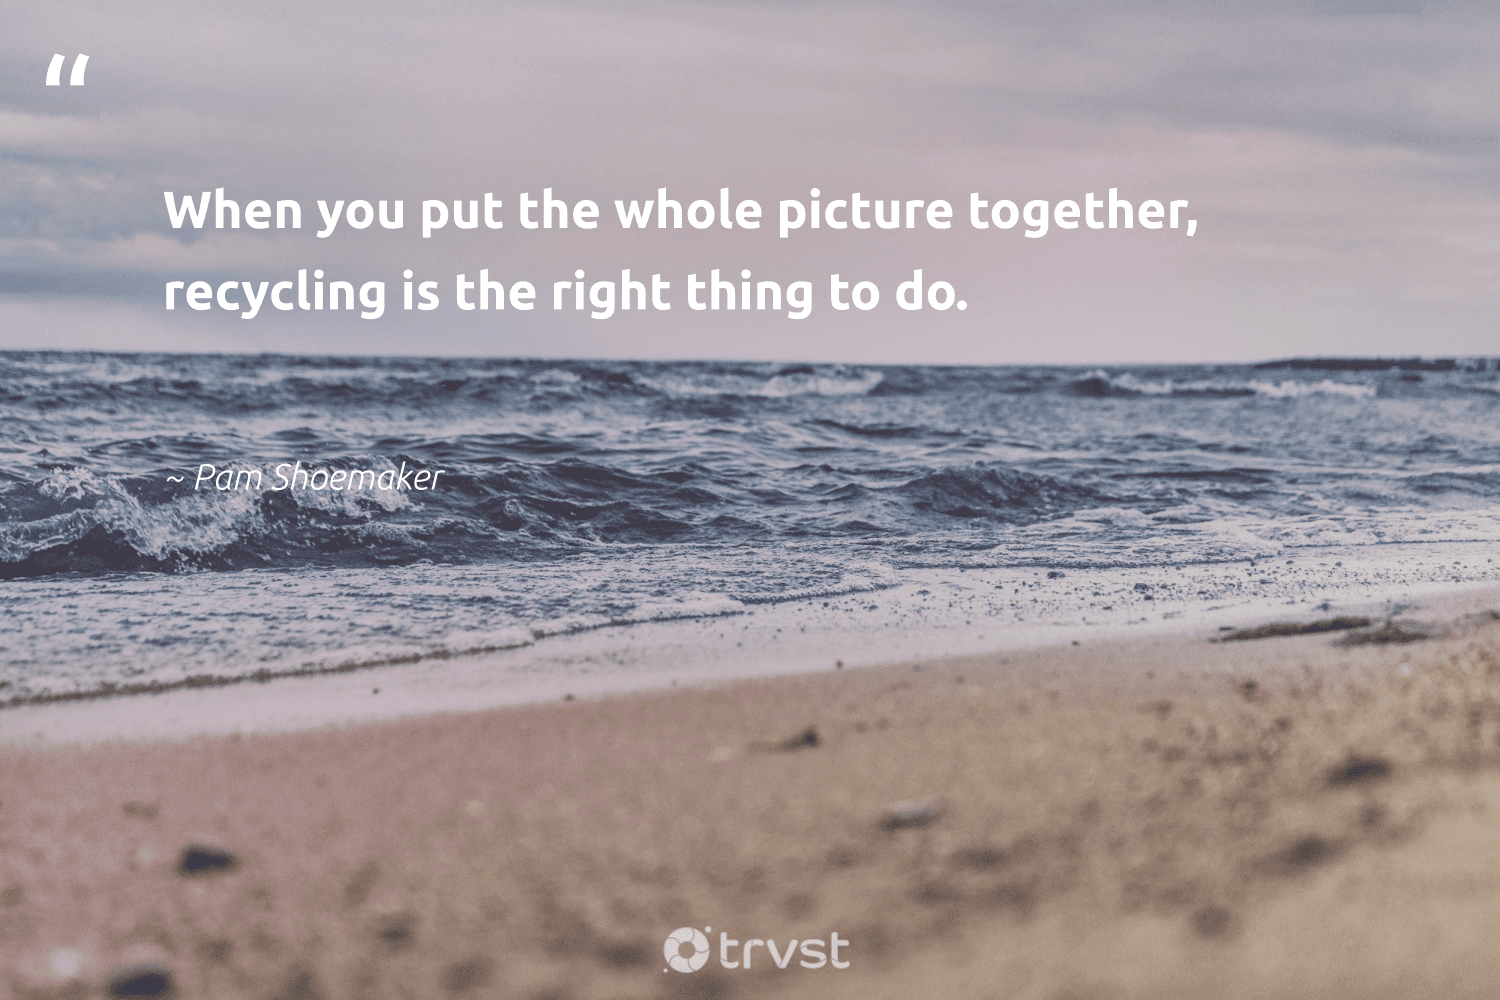 """""""When you put the whole picture together, recycling is the right thing to do.""""  - Pam Shoemaker #trvst #quotes #recycling #upcycling #savetheplanet #greenliving #thinkgreen #reduce #ecofriendly #changeahabit #ecoconscious #upcycle"""